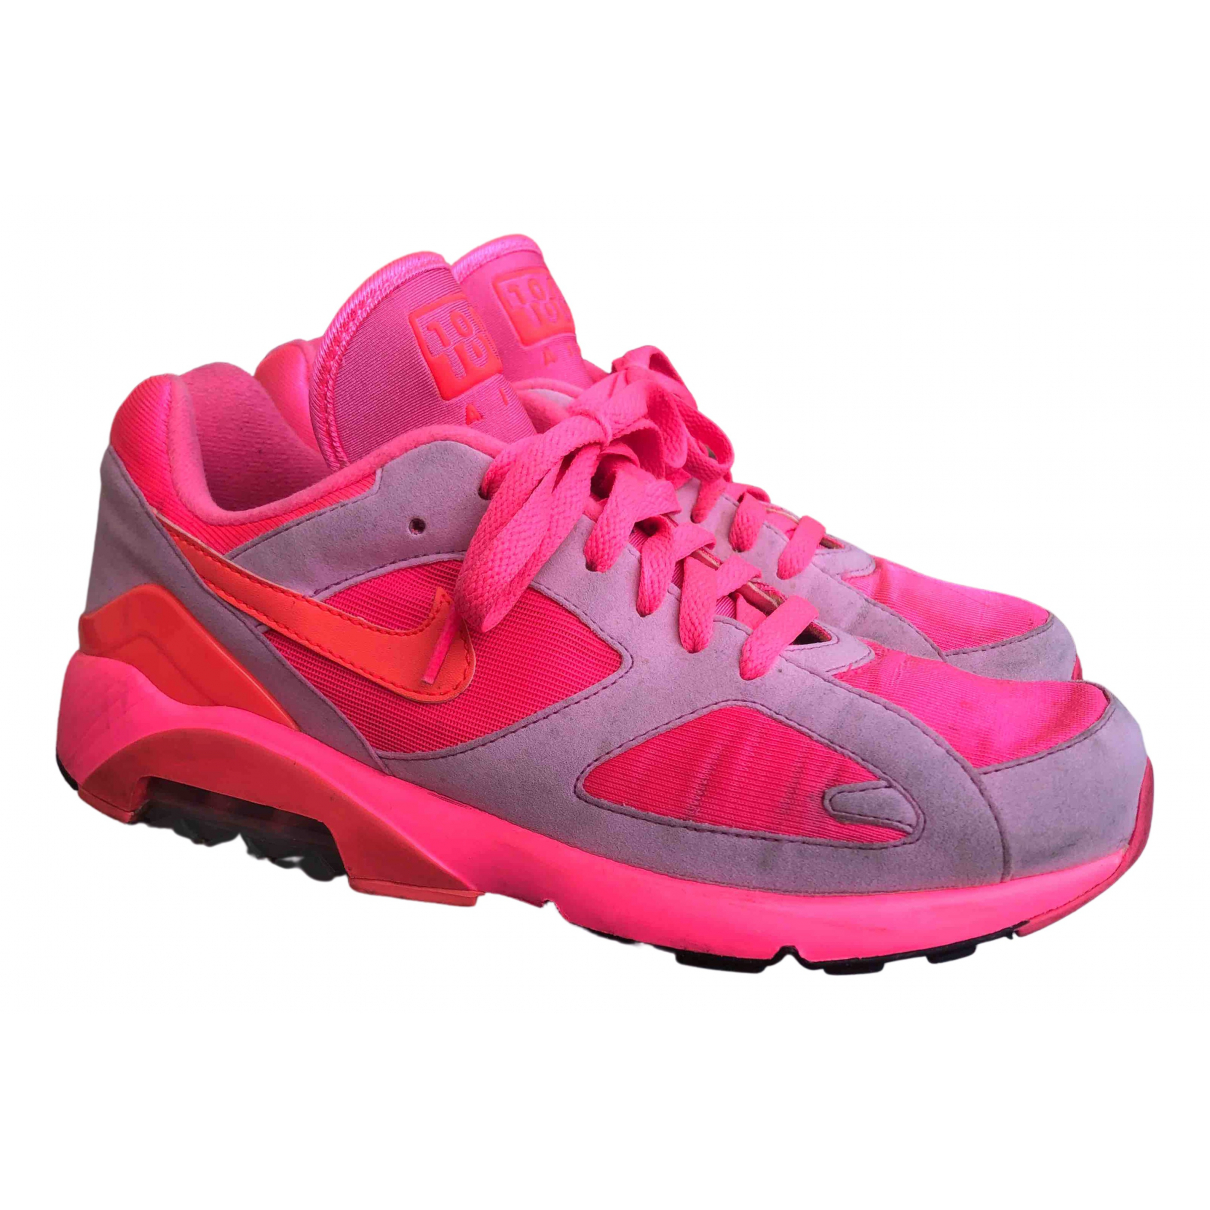 Nike X Comme Des Garcons Air Max 180 Sneakers in  Rosa Leinen